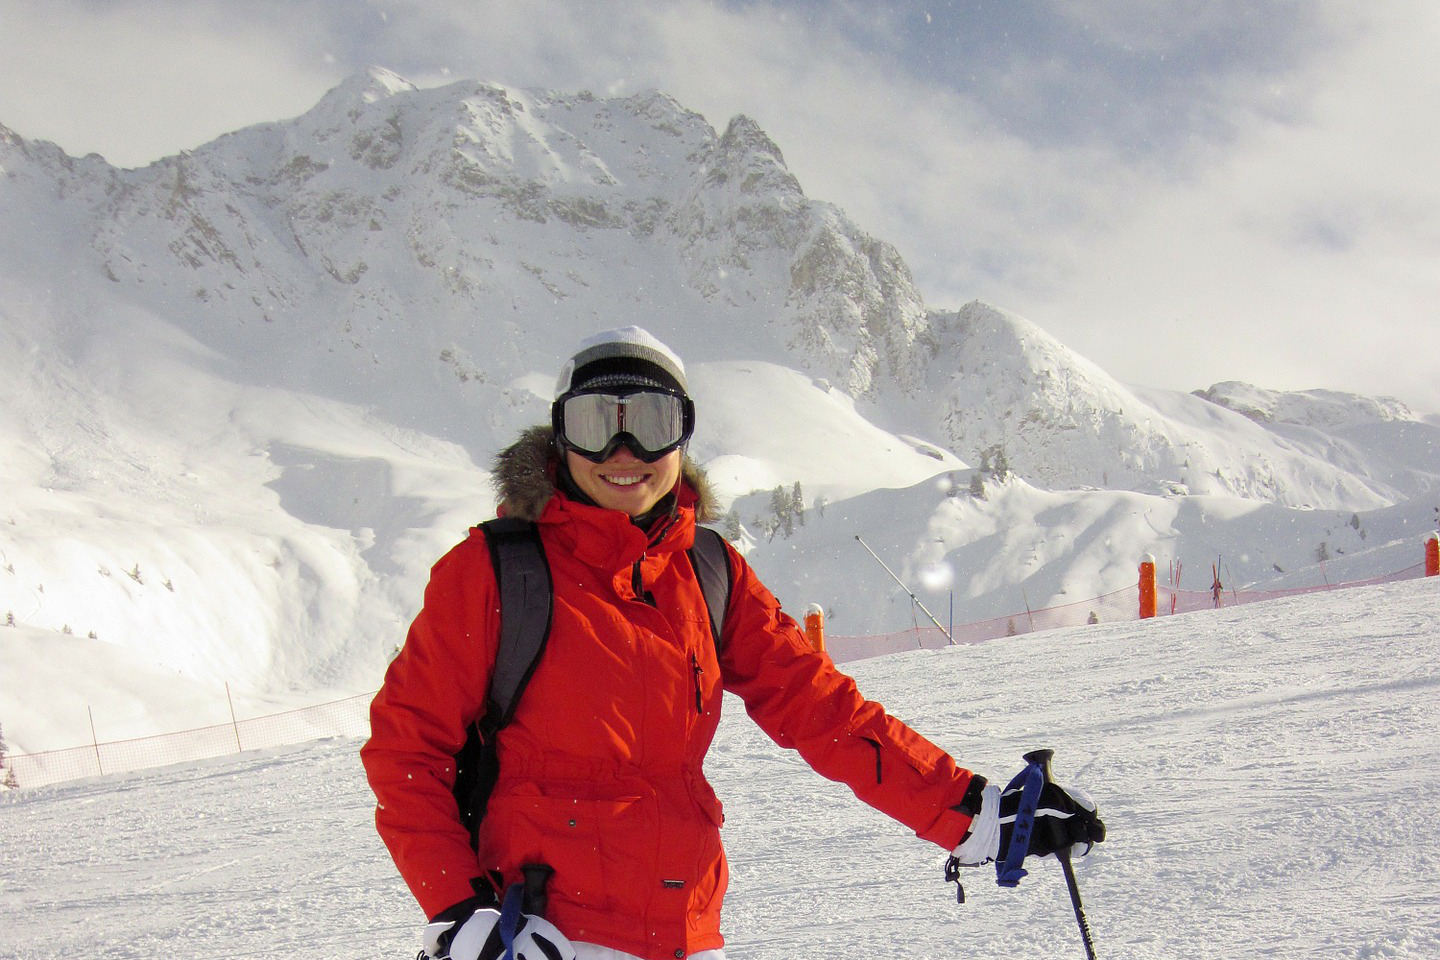 skier wearing goggles mountain background